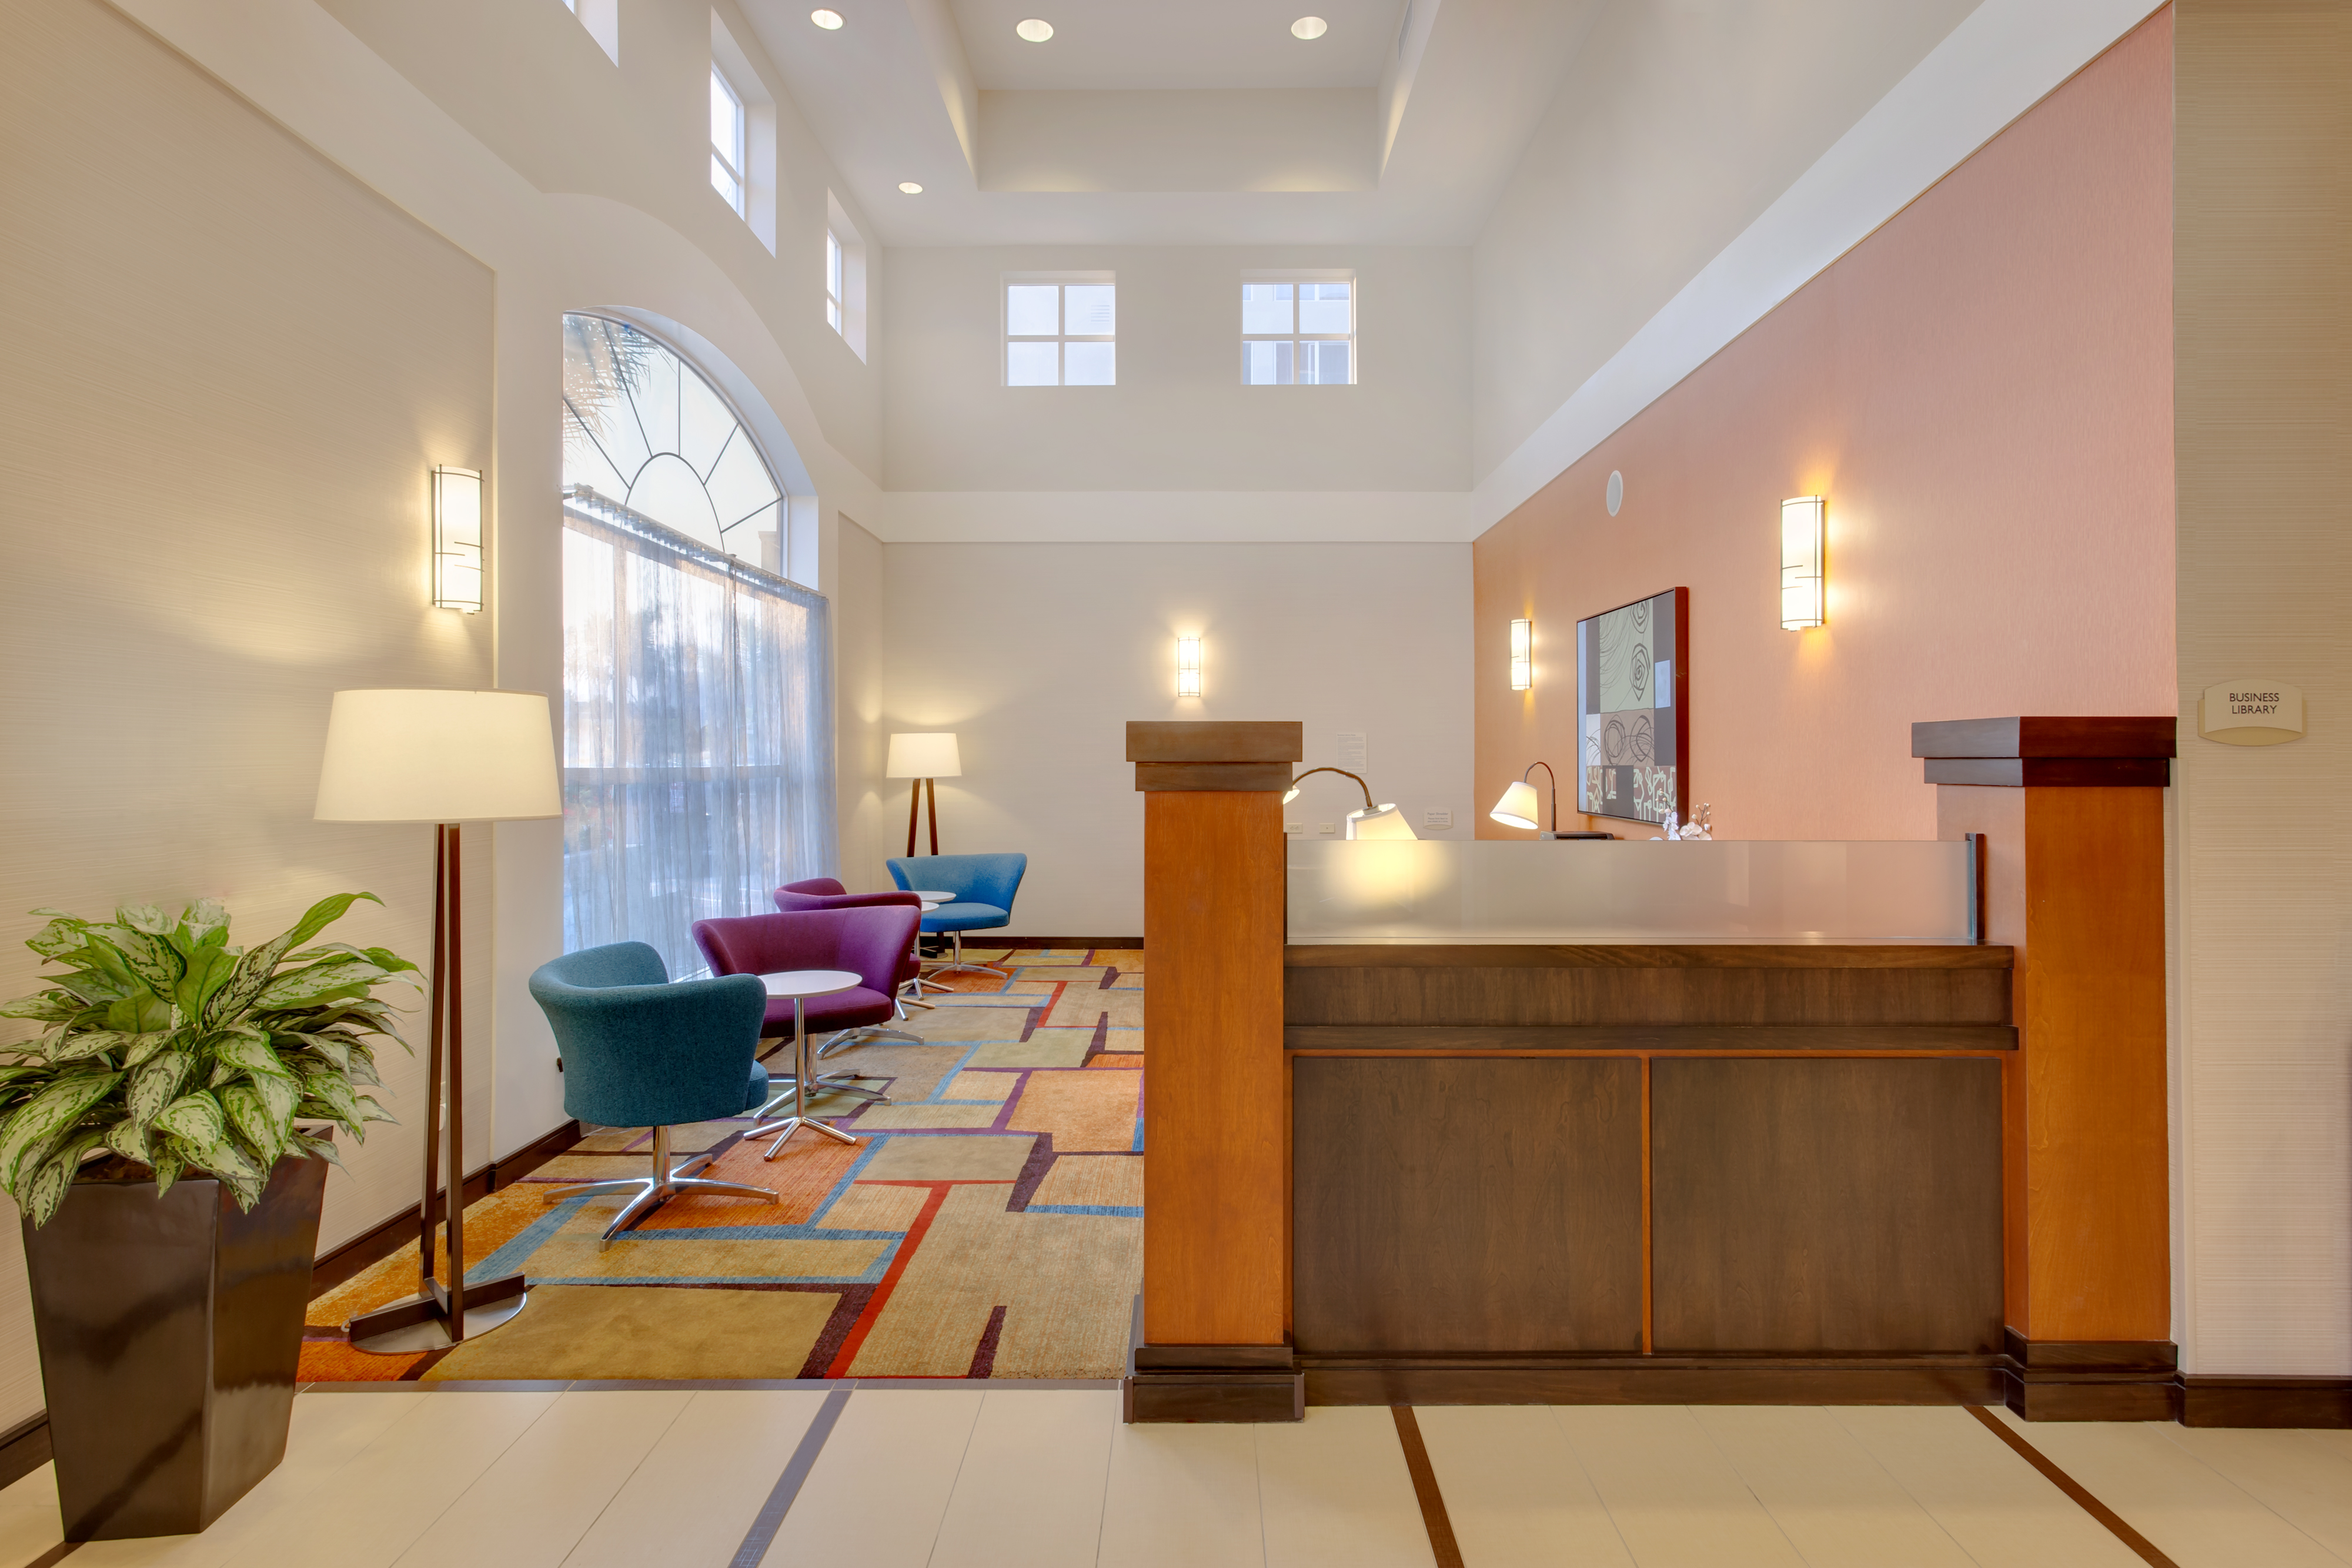 https://www.hotelsbyday.com/_data/default-hotel_image/1/6266/sfome-business-library-lobby-view.jpg